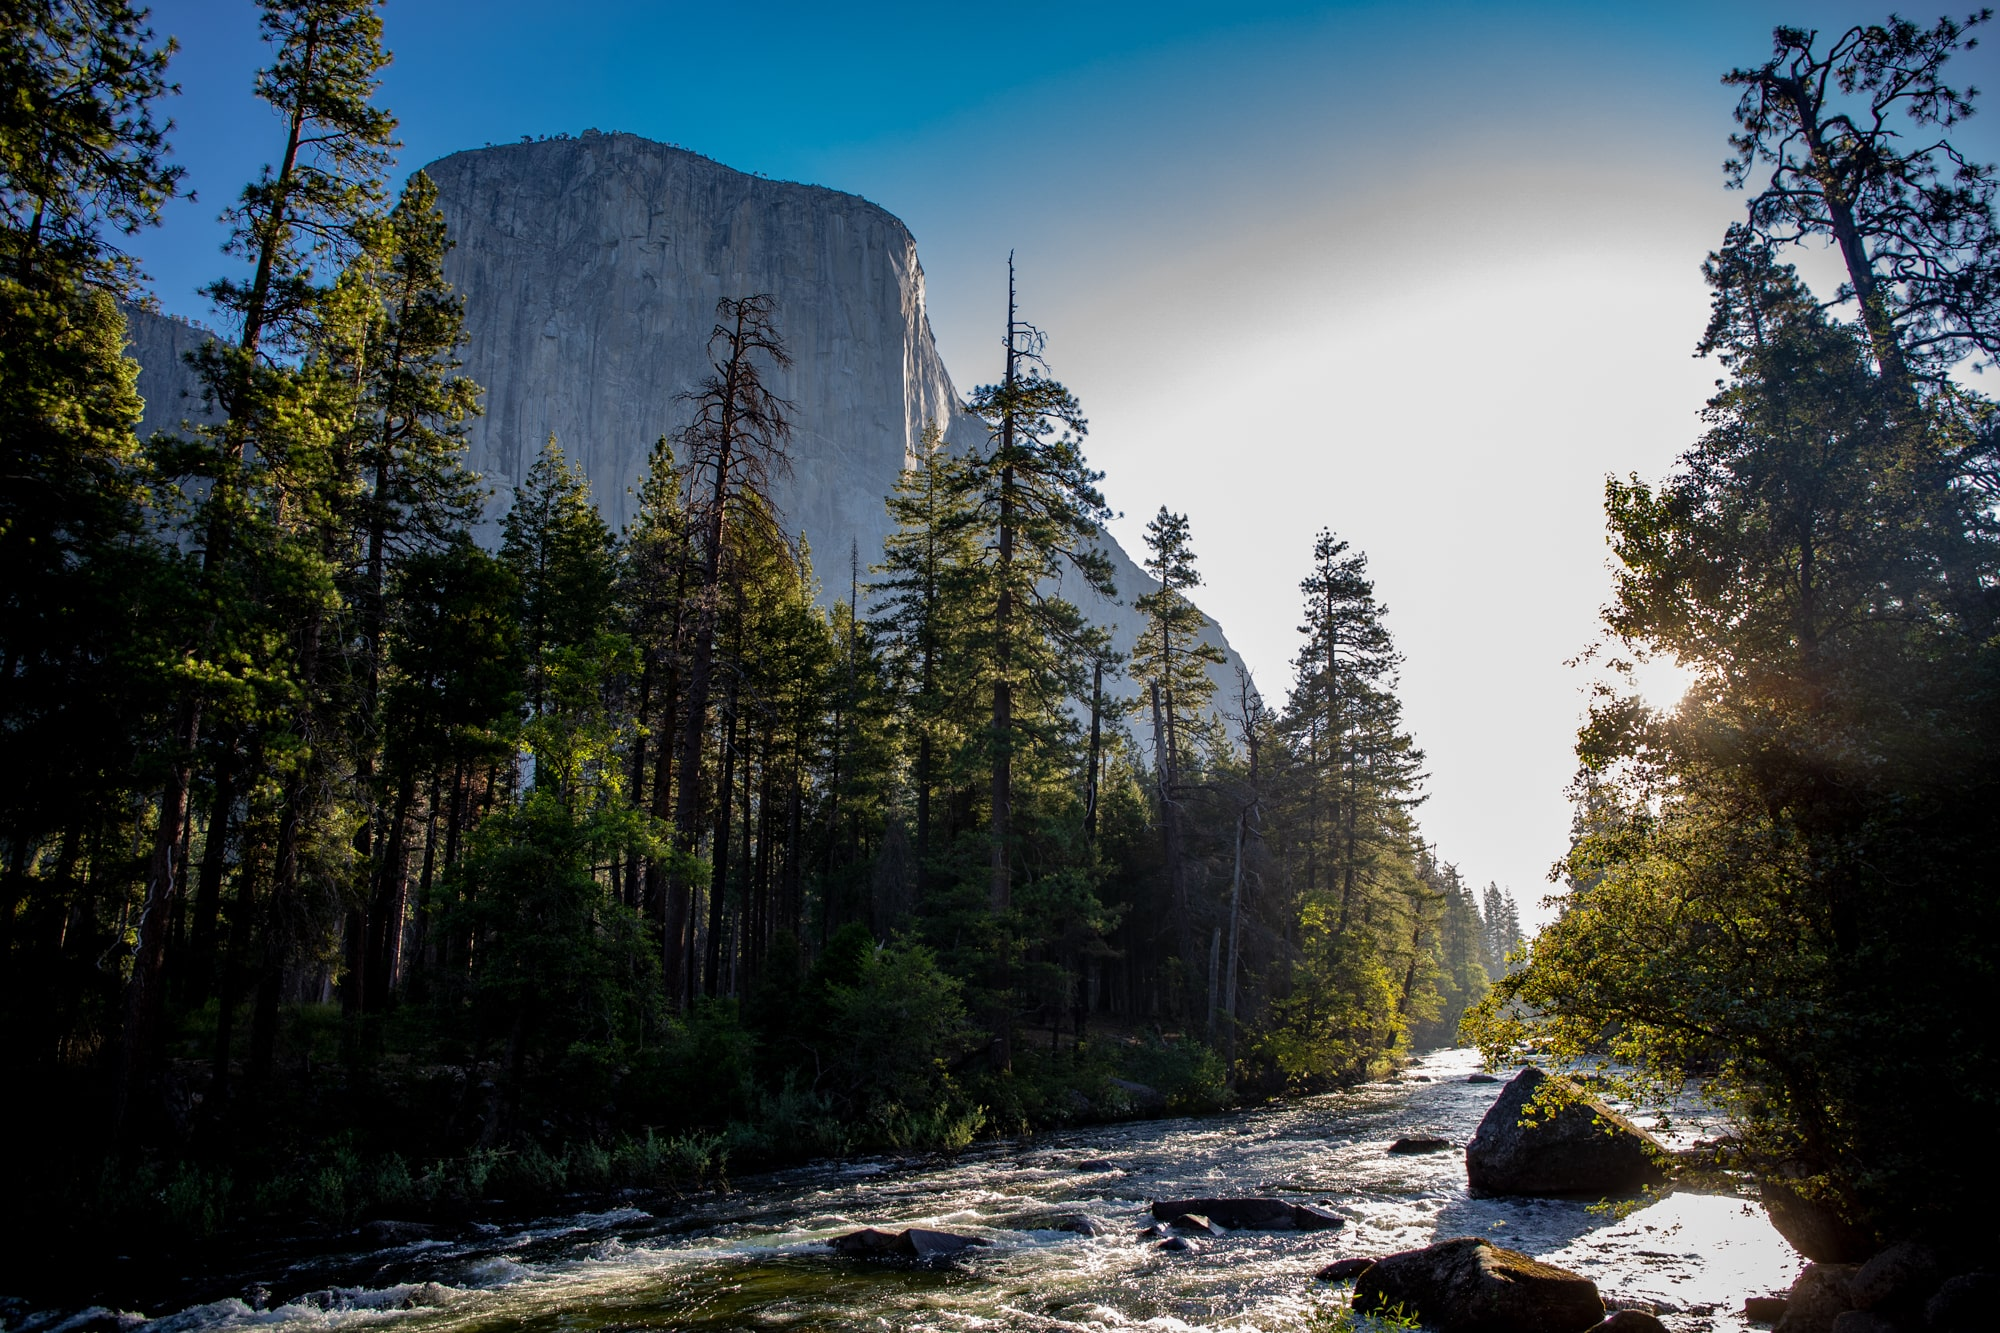 A RIVER RUSHES THROUGH THE YOSEMITE VALLEY